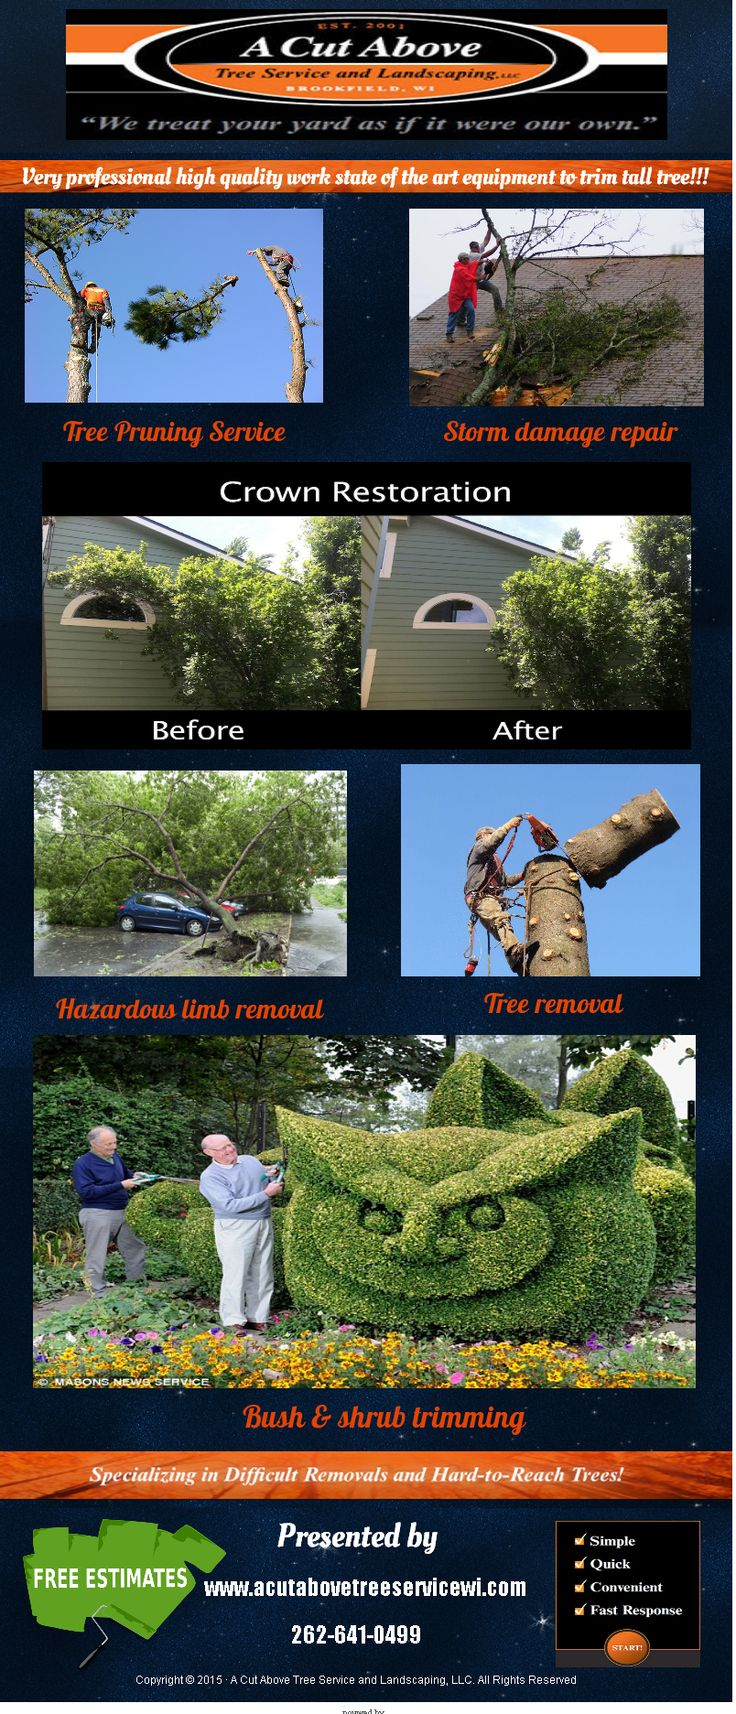 Very professional and high quality tree removal service